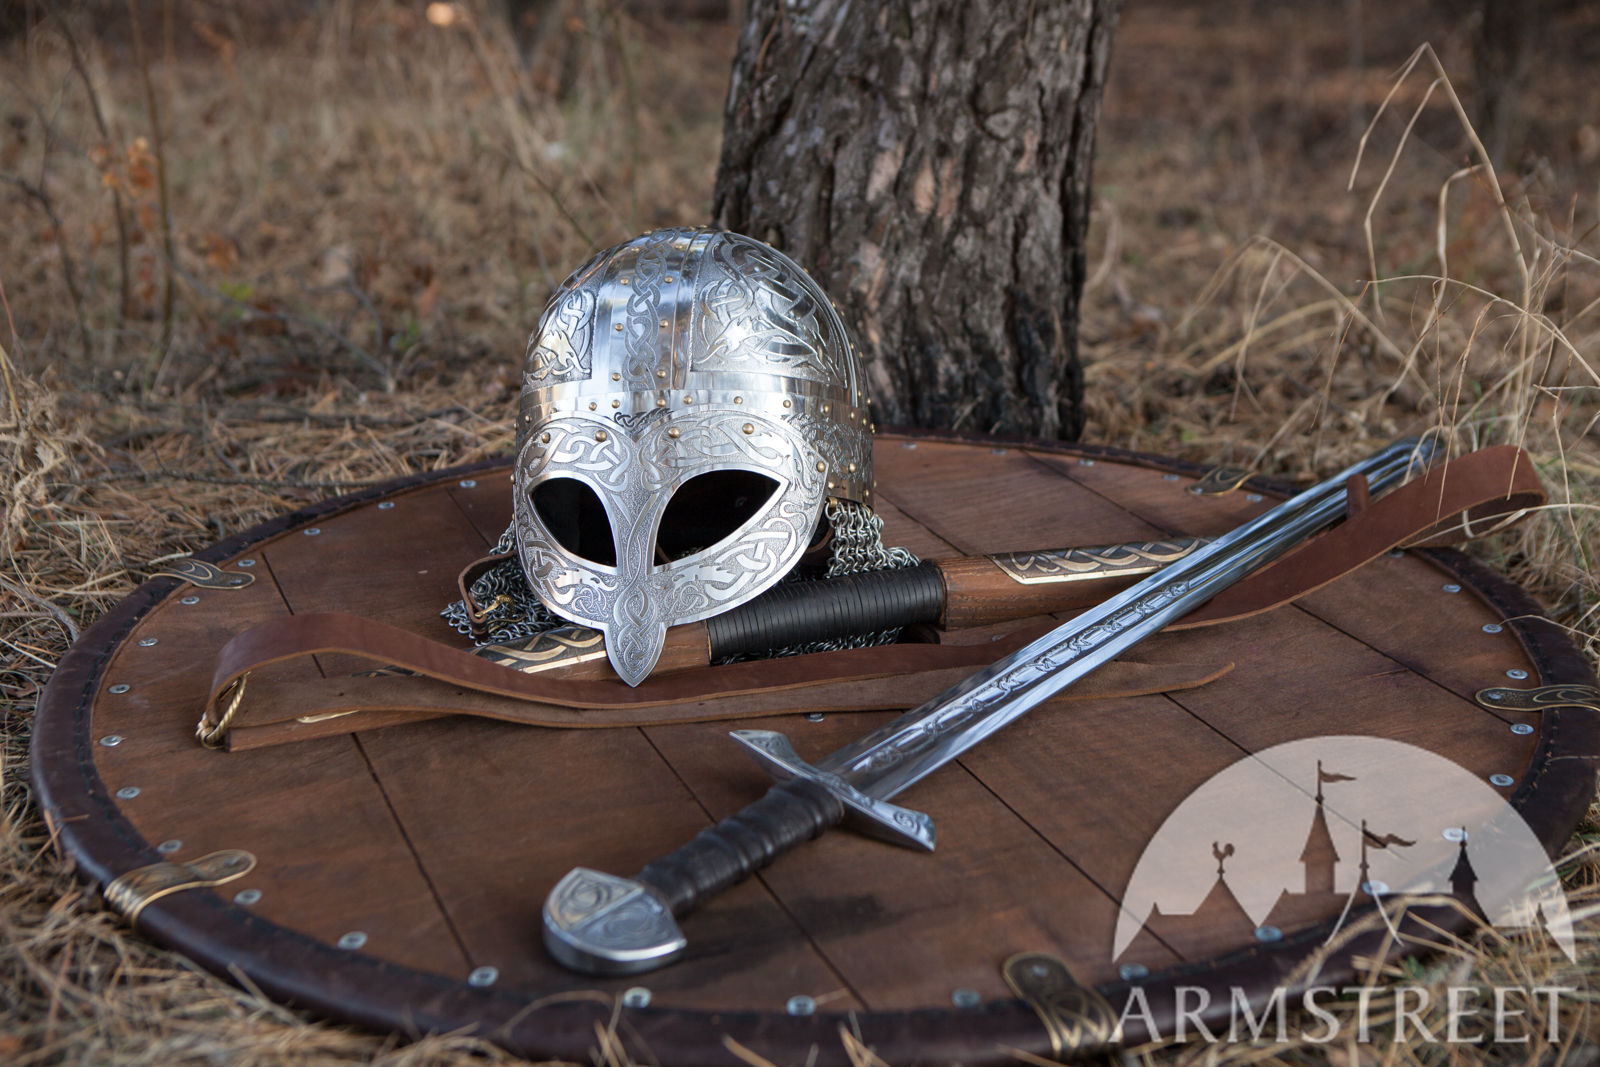 Viking's etched helmet, sword and shiled